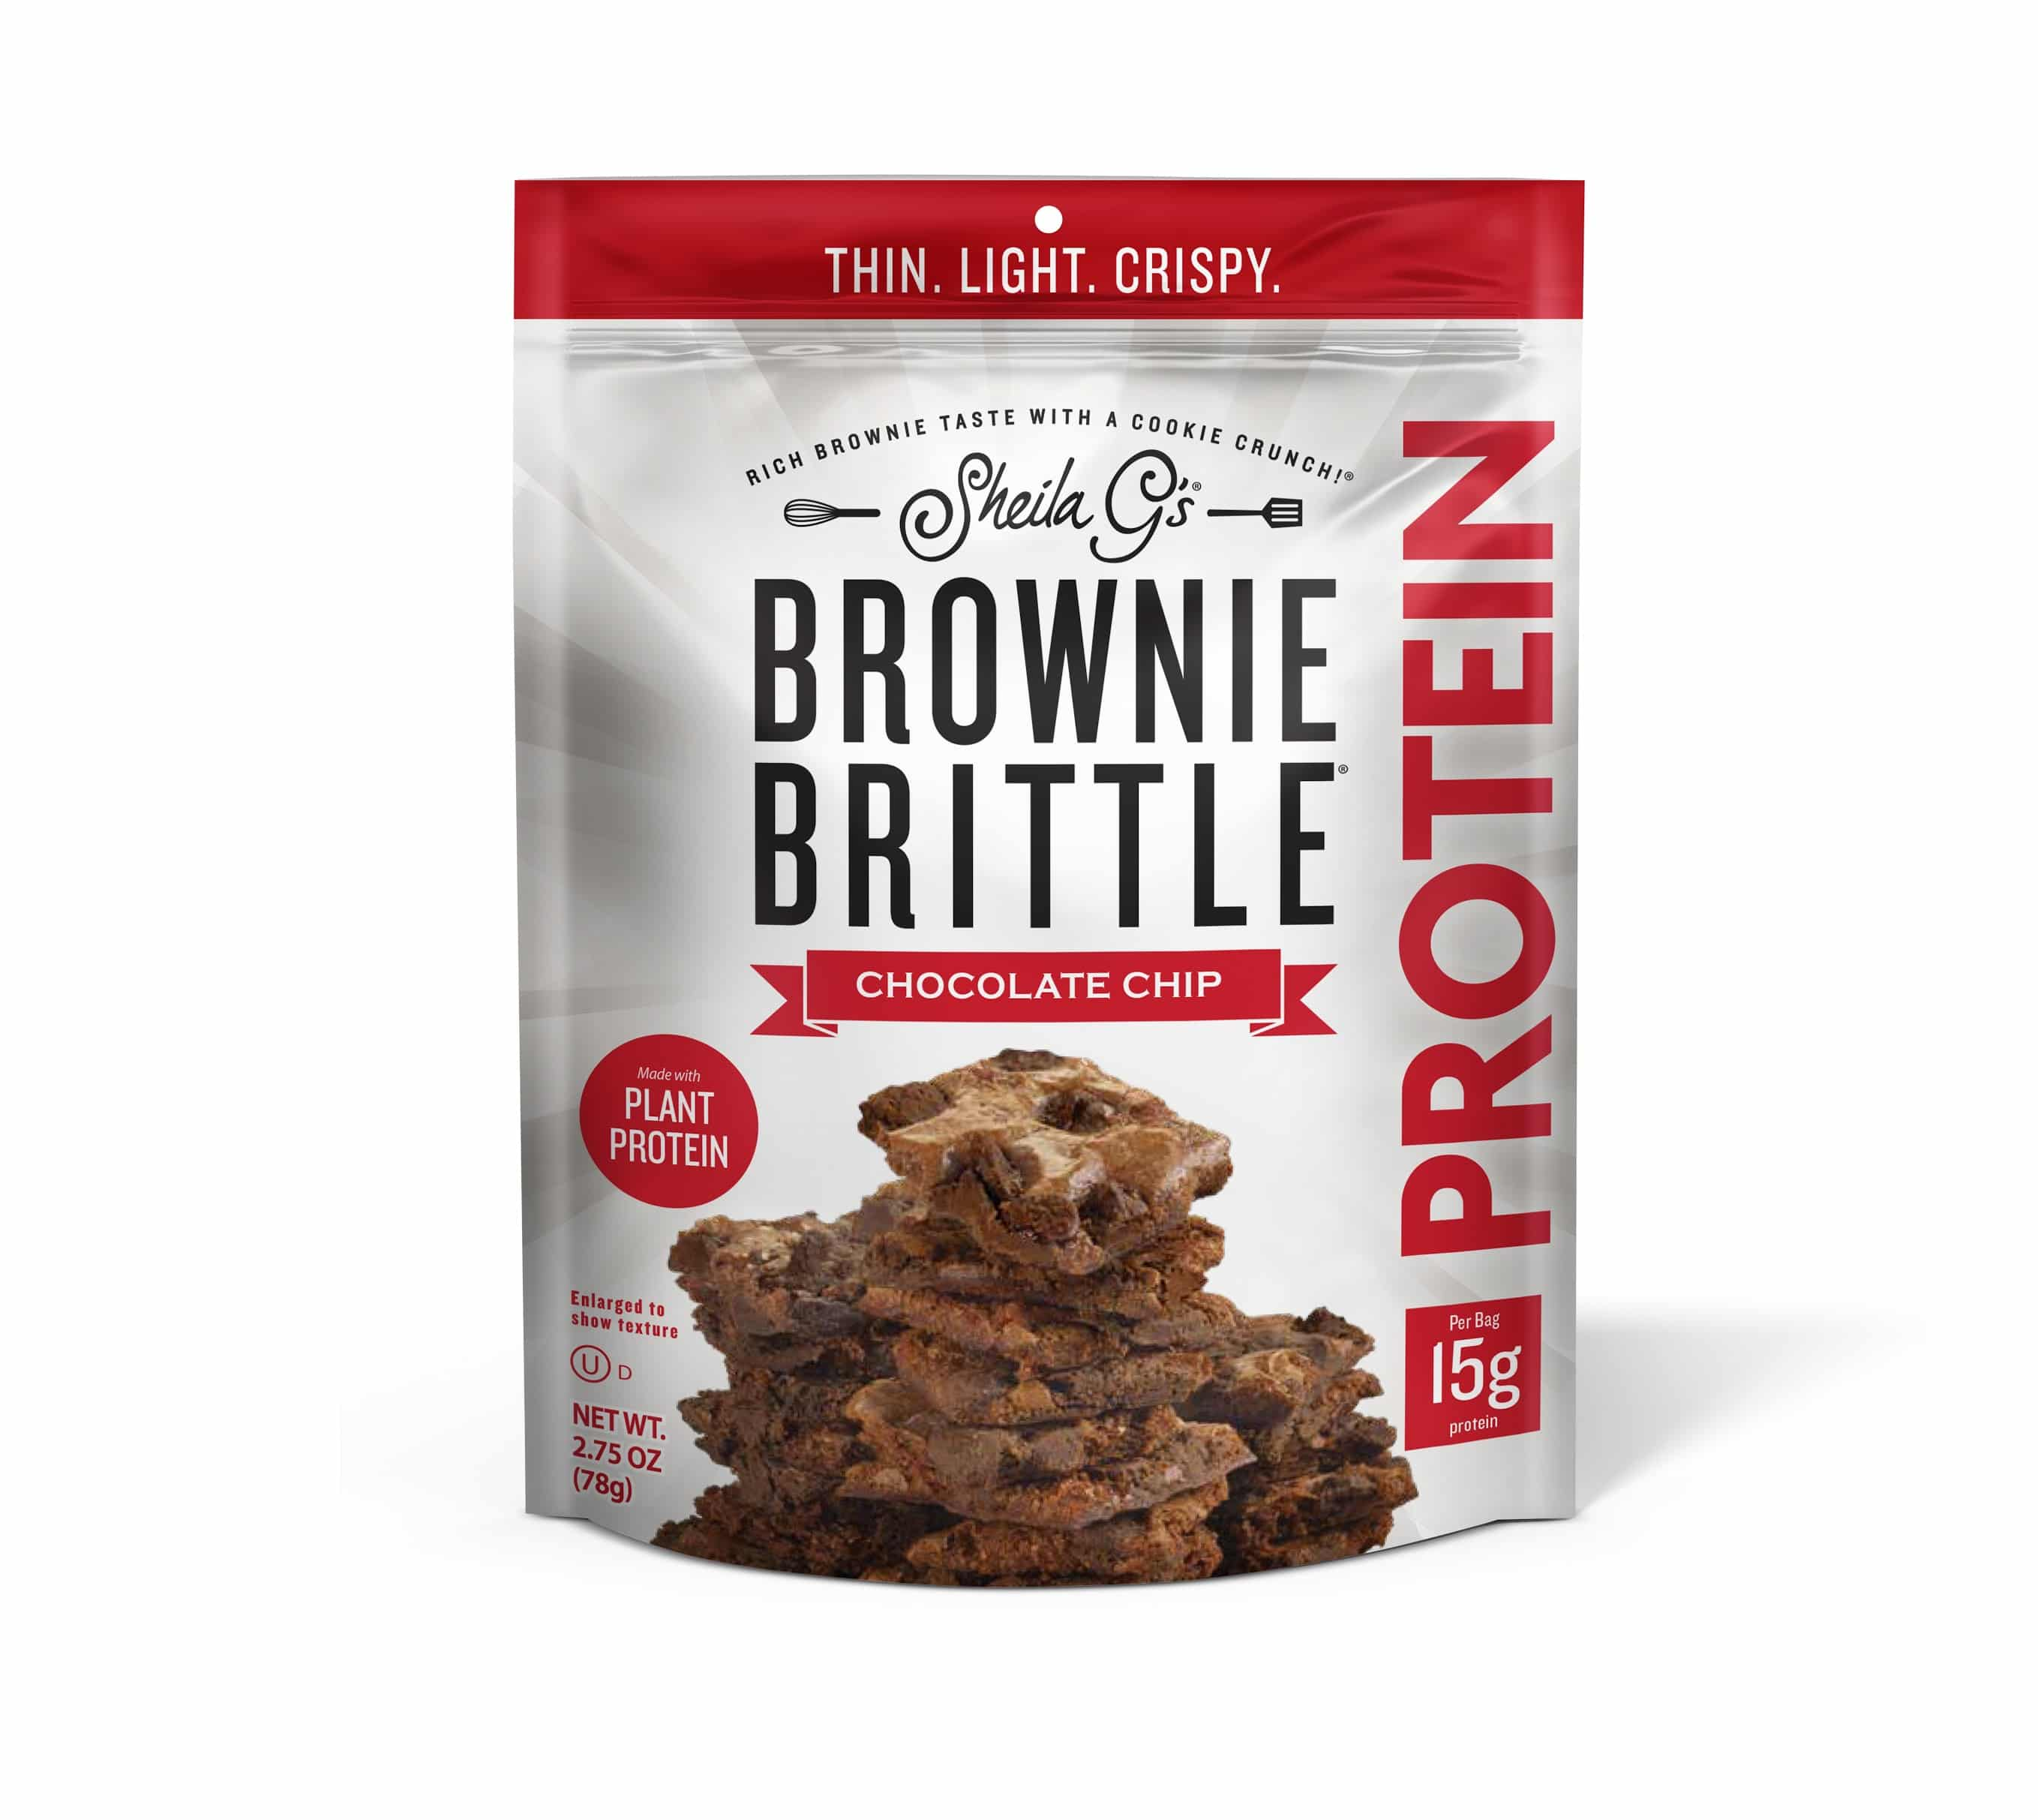 Sheila G's Brownie Brittle to Serve Up New Keto and Protein Lines at Expo West